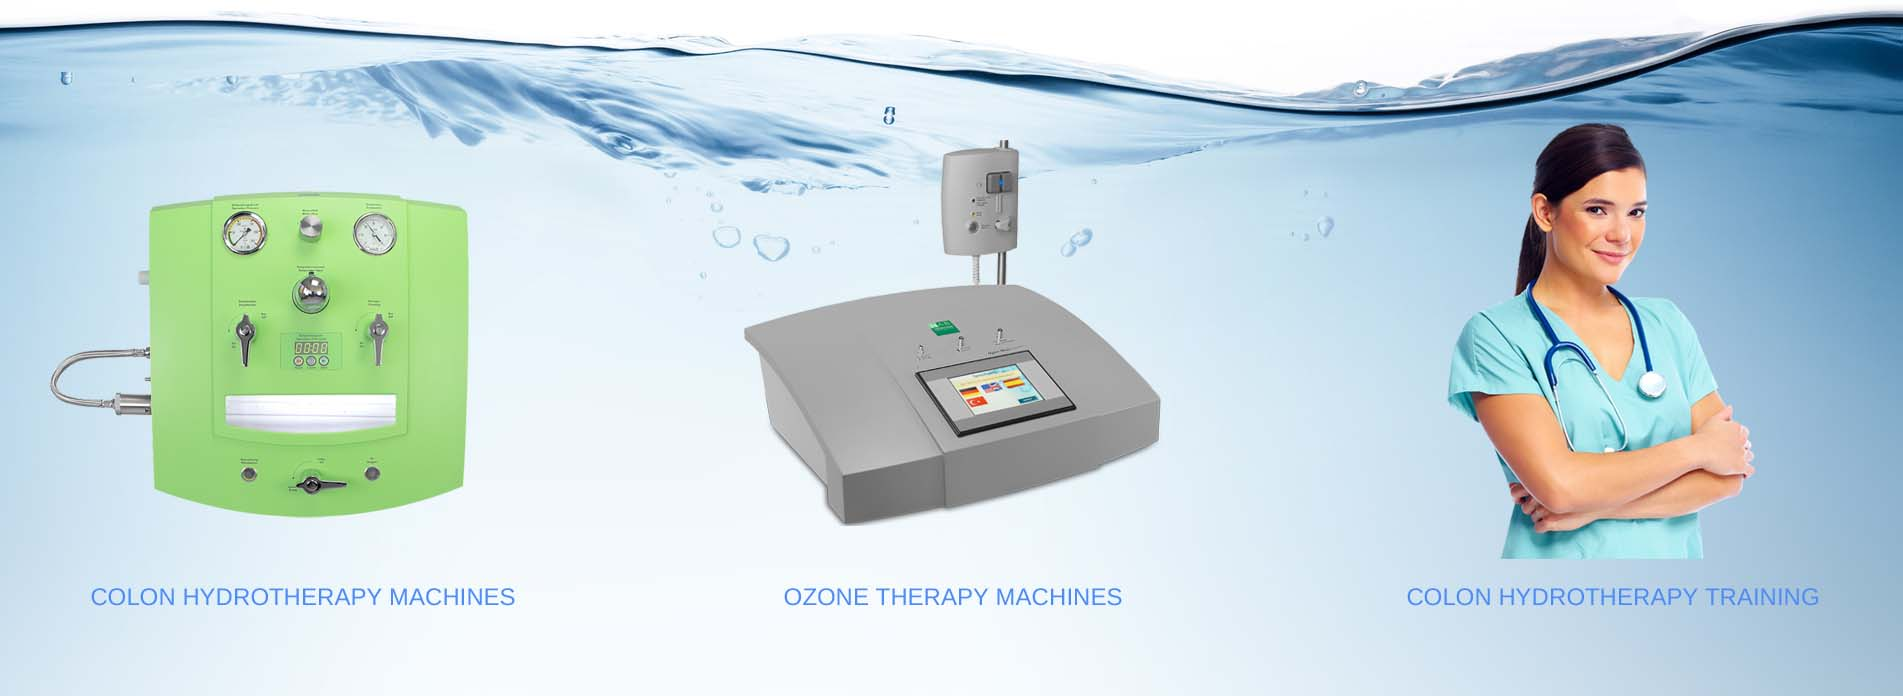 colon hydrotherapy machines training